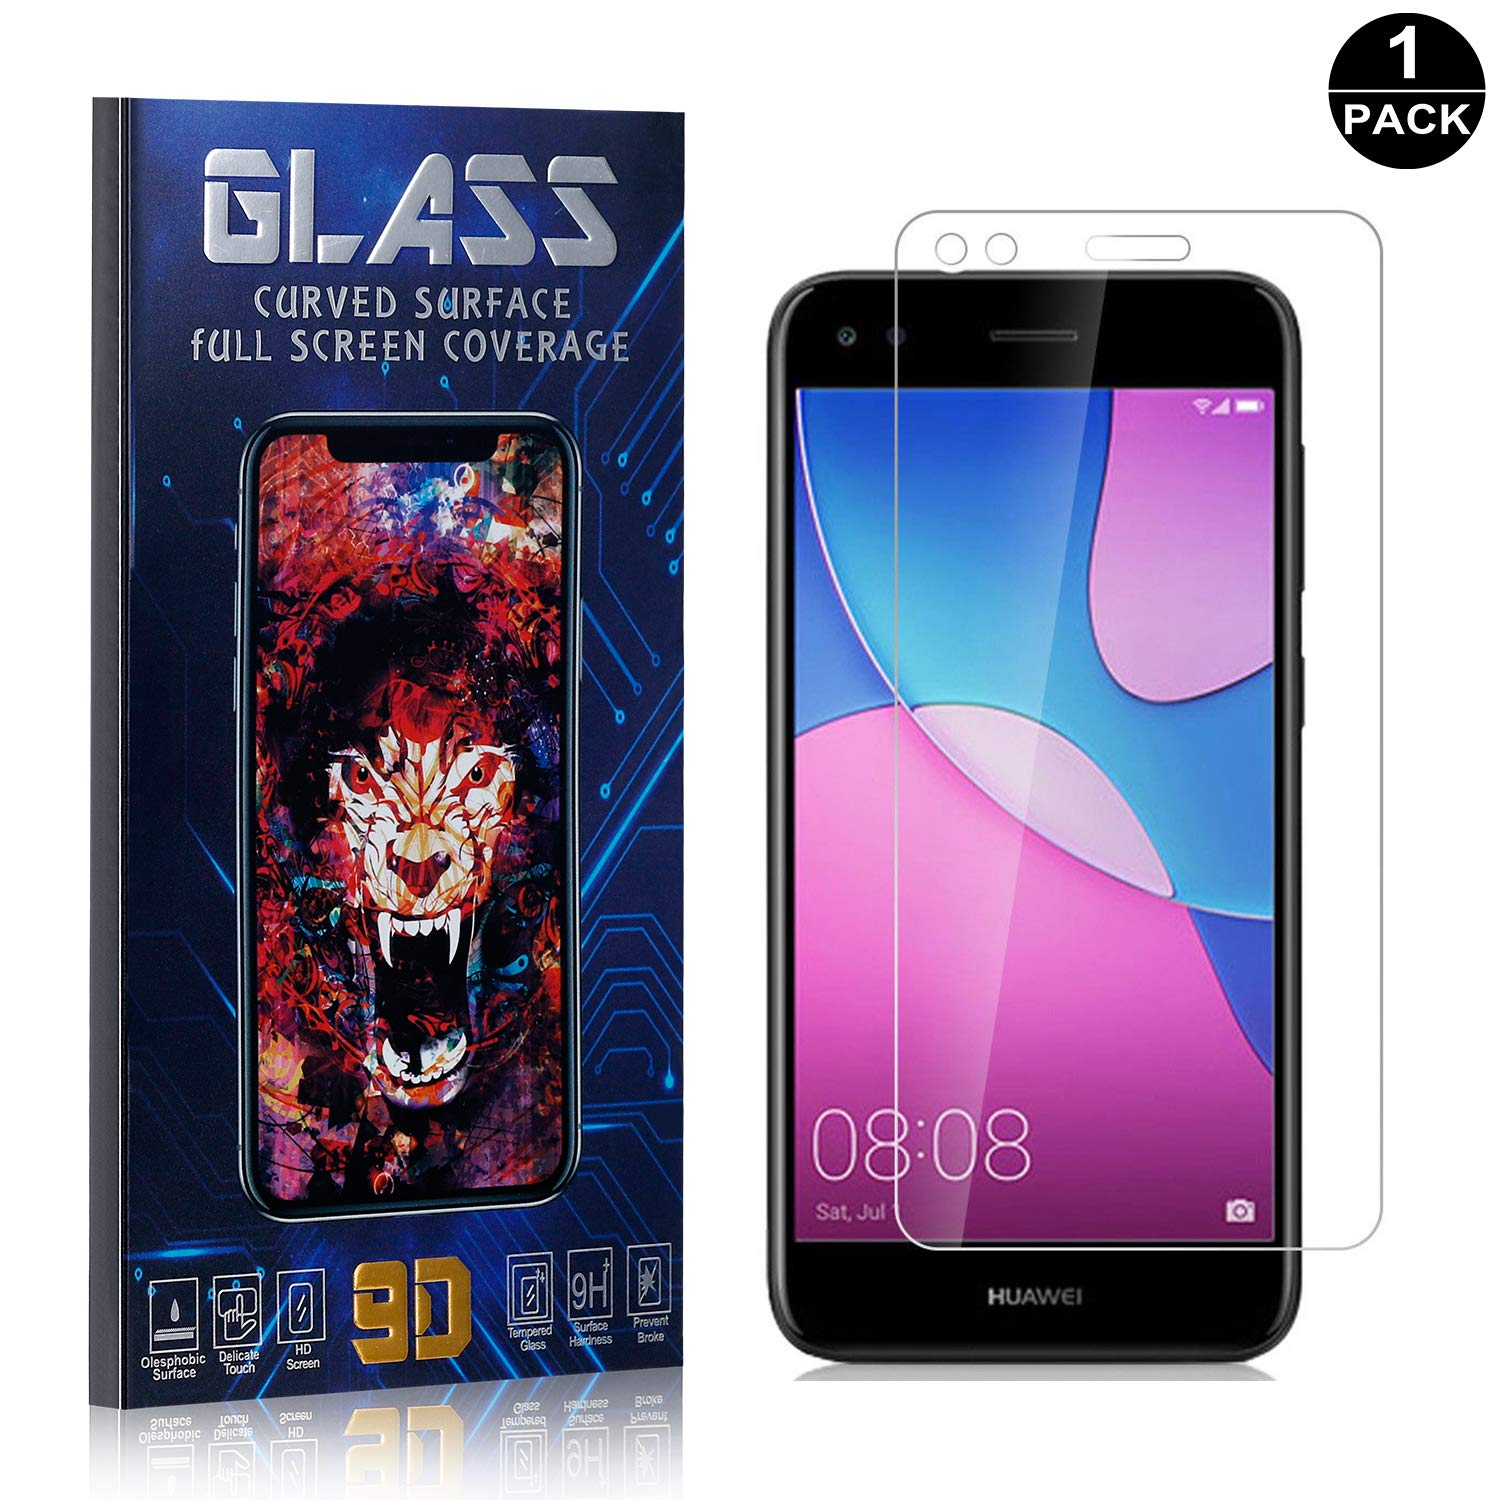 Bubble Free Screen Protector Tempered Glass Screen Protector UNEXTATI Screen Protector for Huawei P9 Lite 1 Pack Anti Scratch